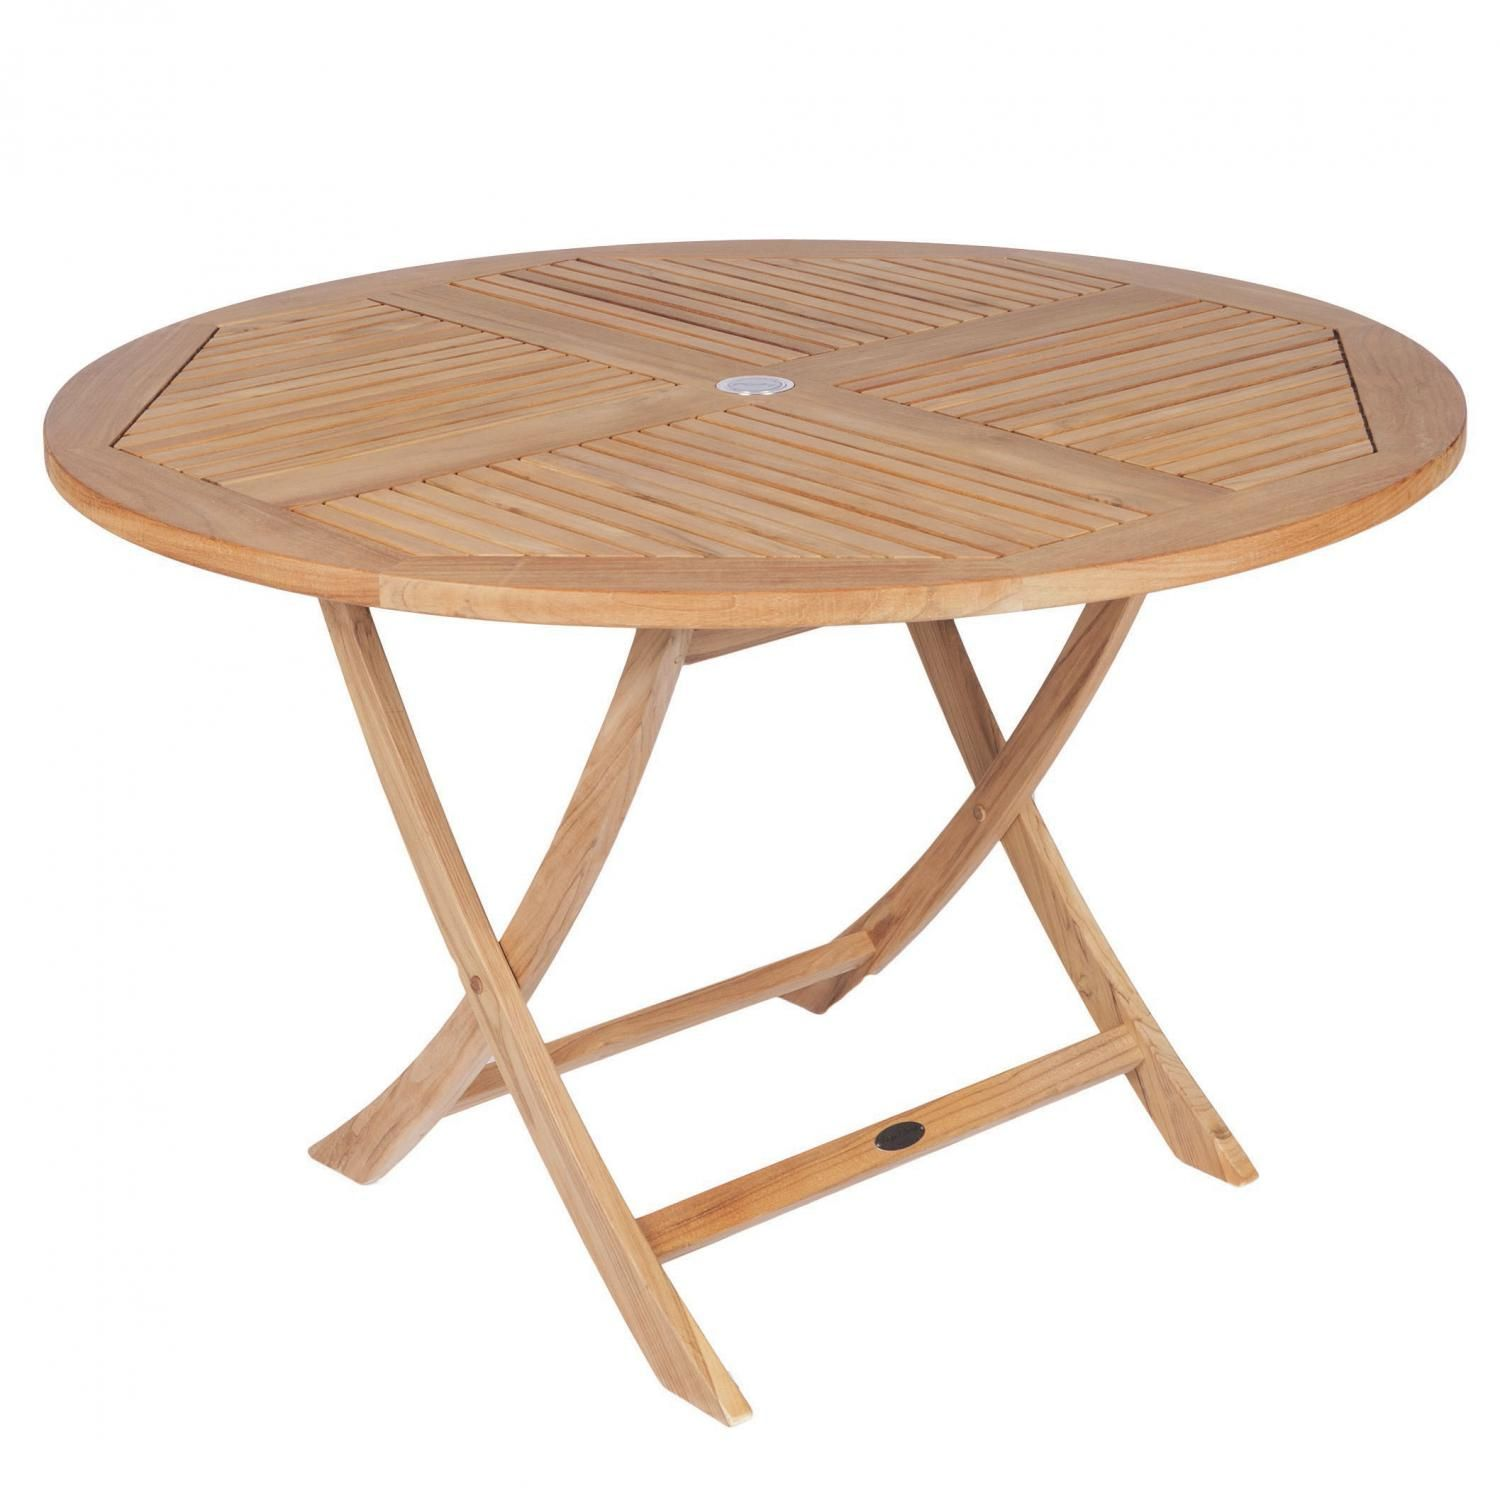 Royal Teak Collection Sailor 47 Inch Round Teak Folding Patio